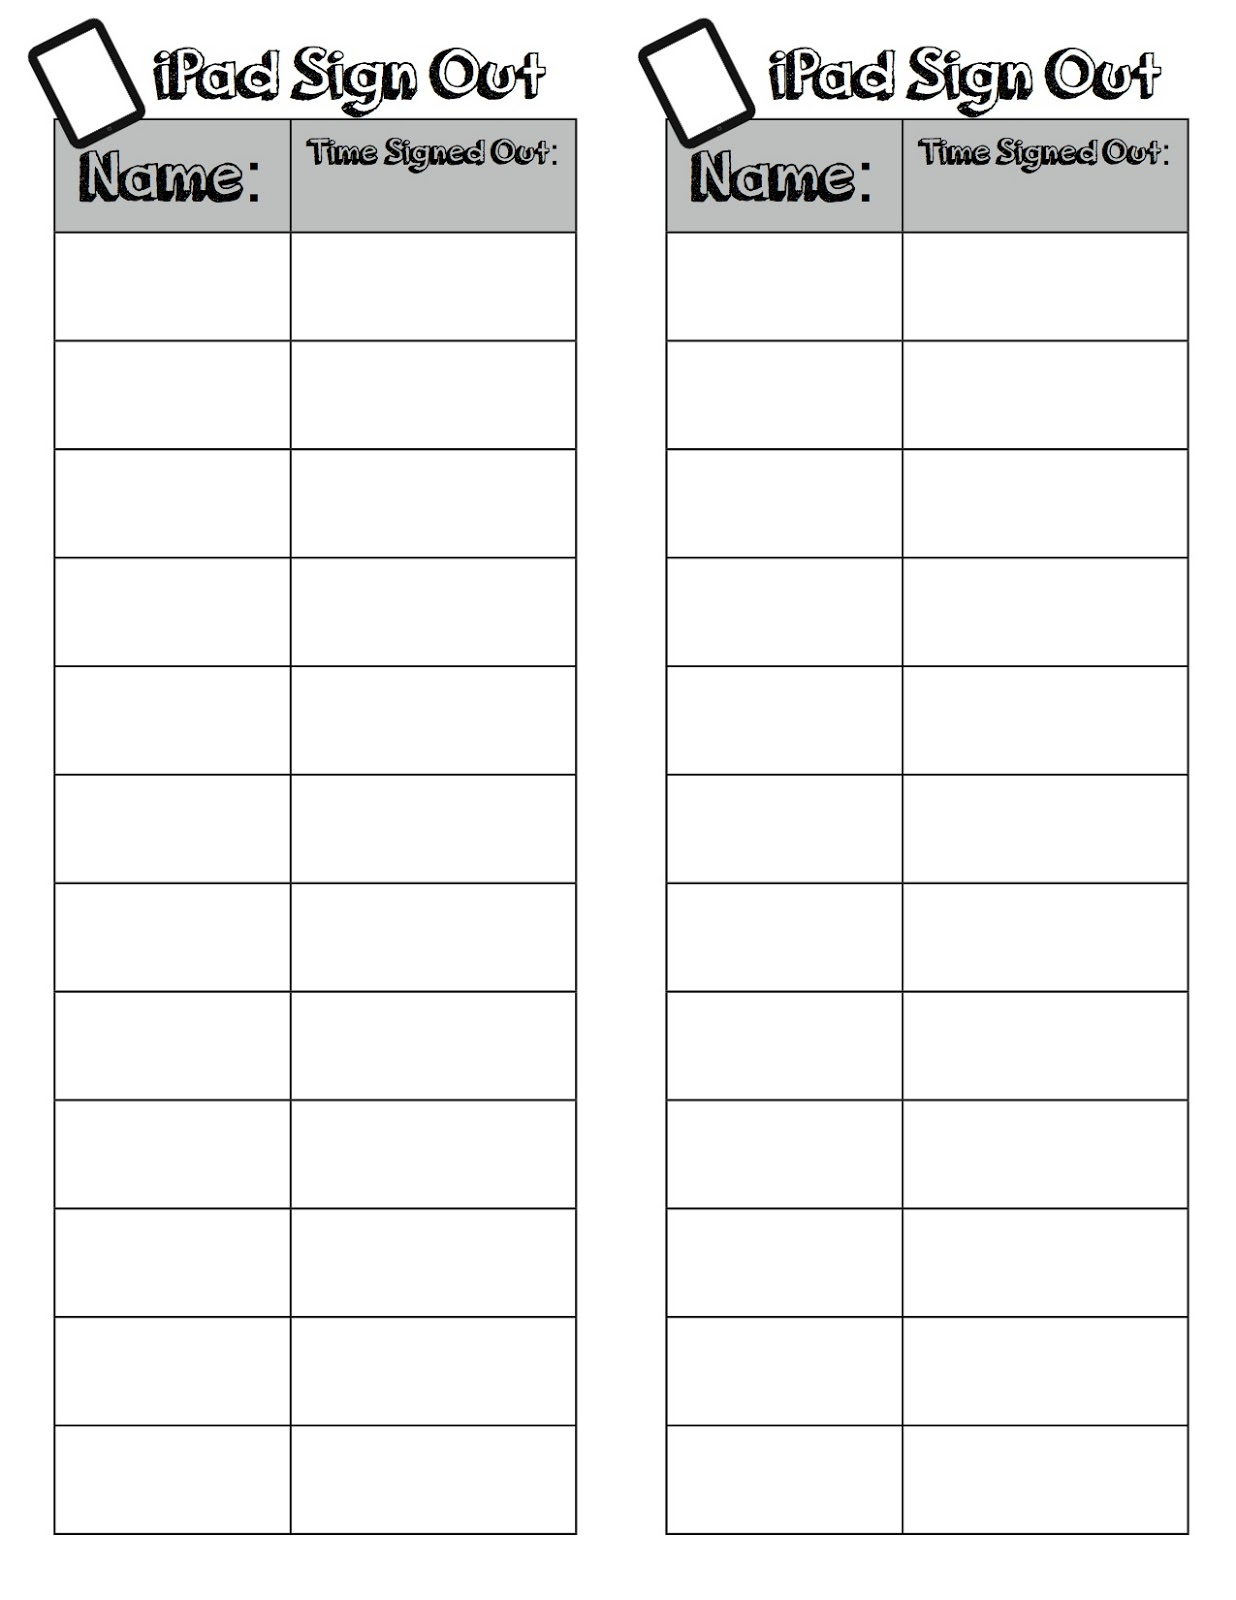 ipad sign out freebie the techie teacher